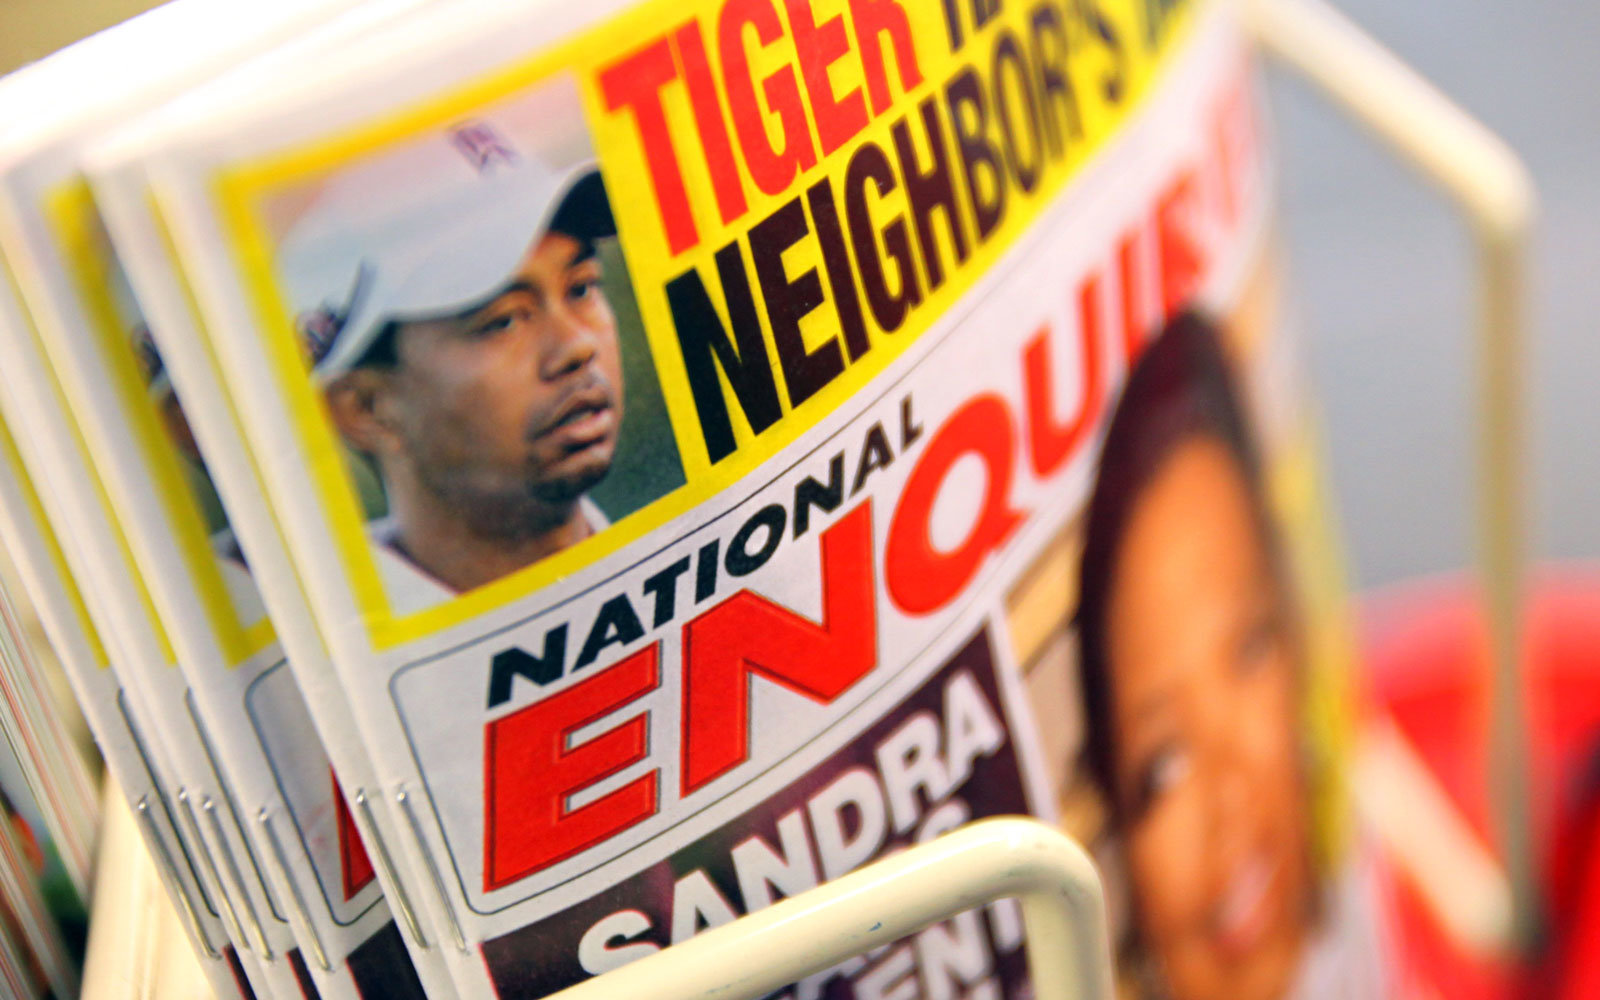 A National Enquirer cover at a newsstand.